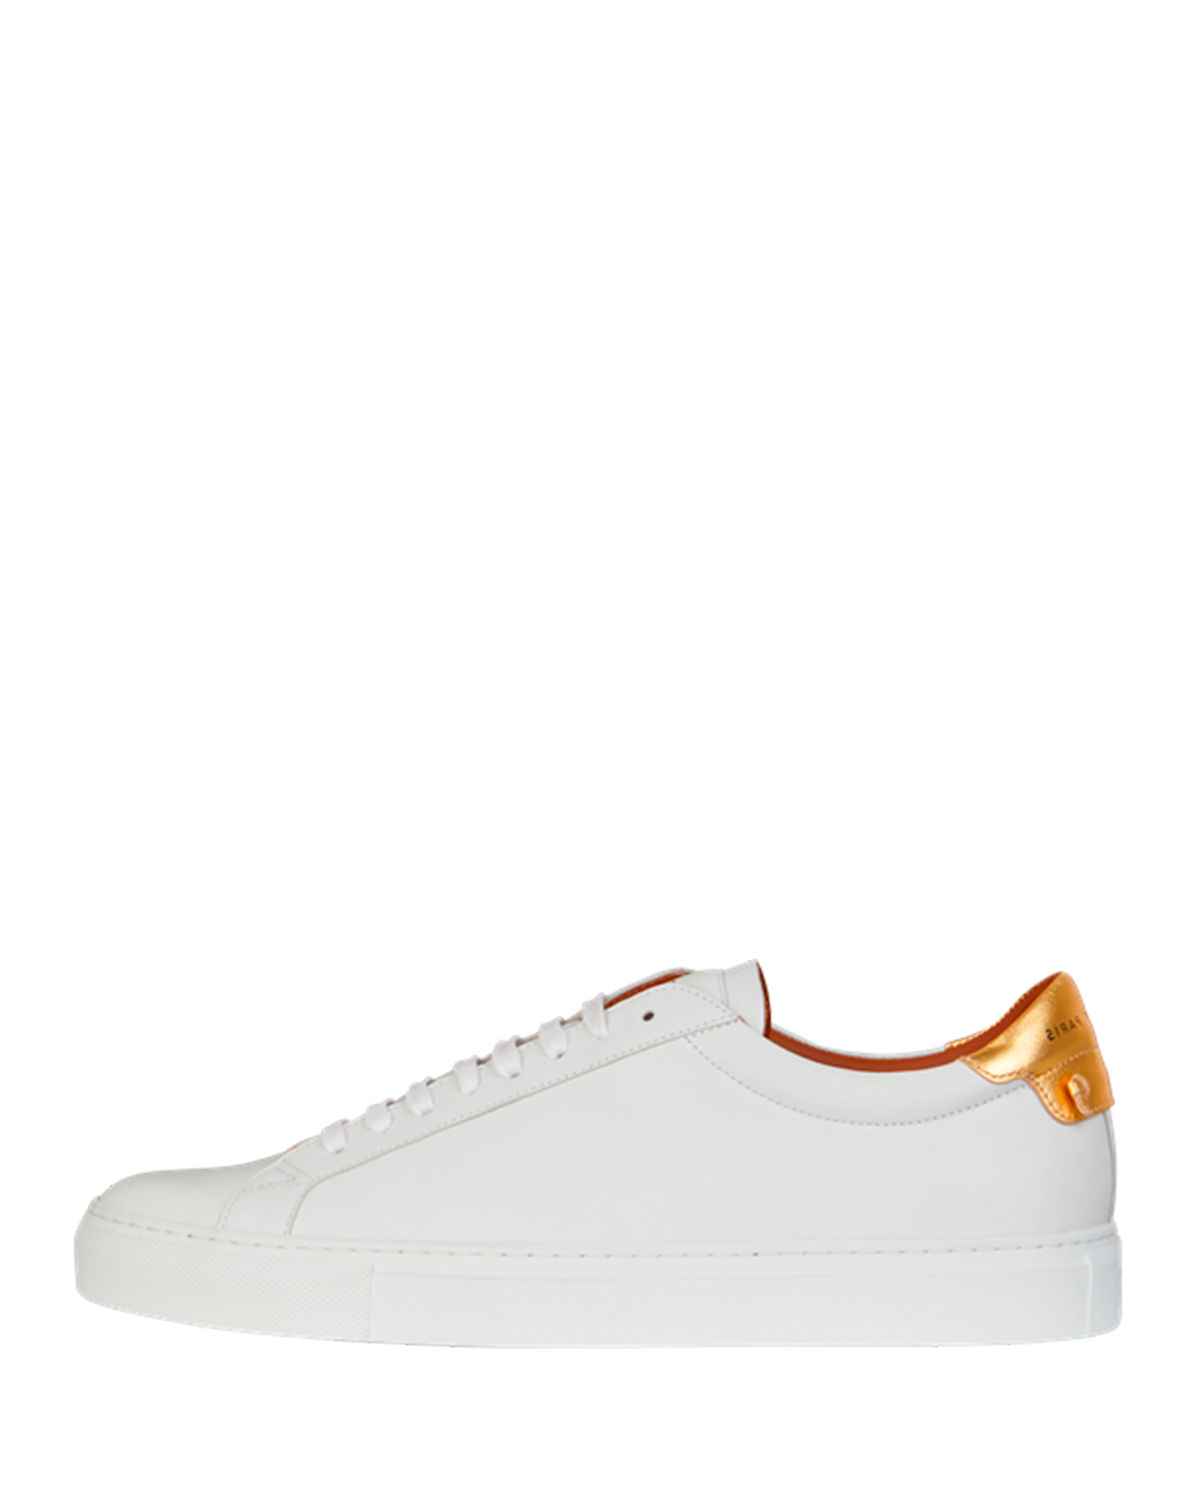 Givenchy Sneakers MEN'S URBAN STREET SHEEP LEATHER SNEAKERS